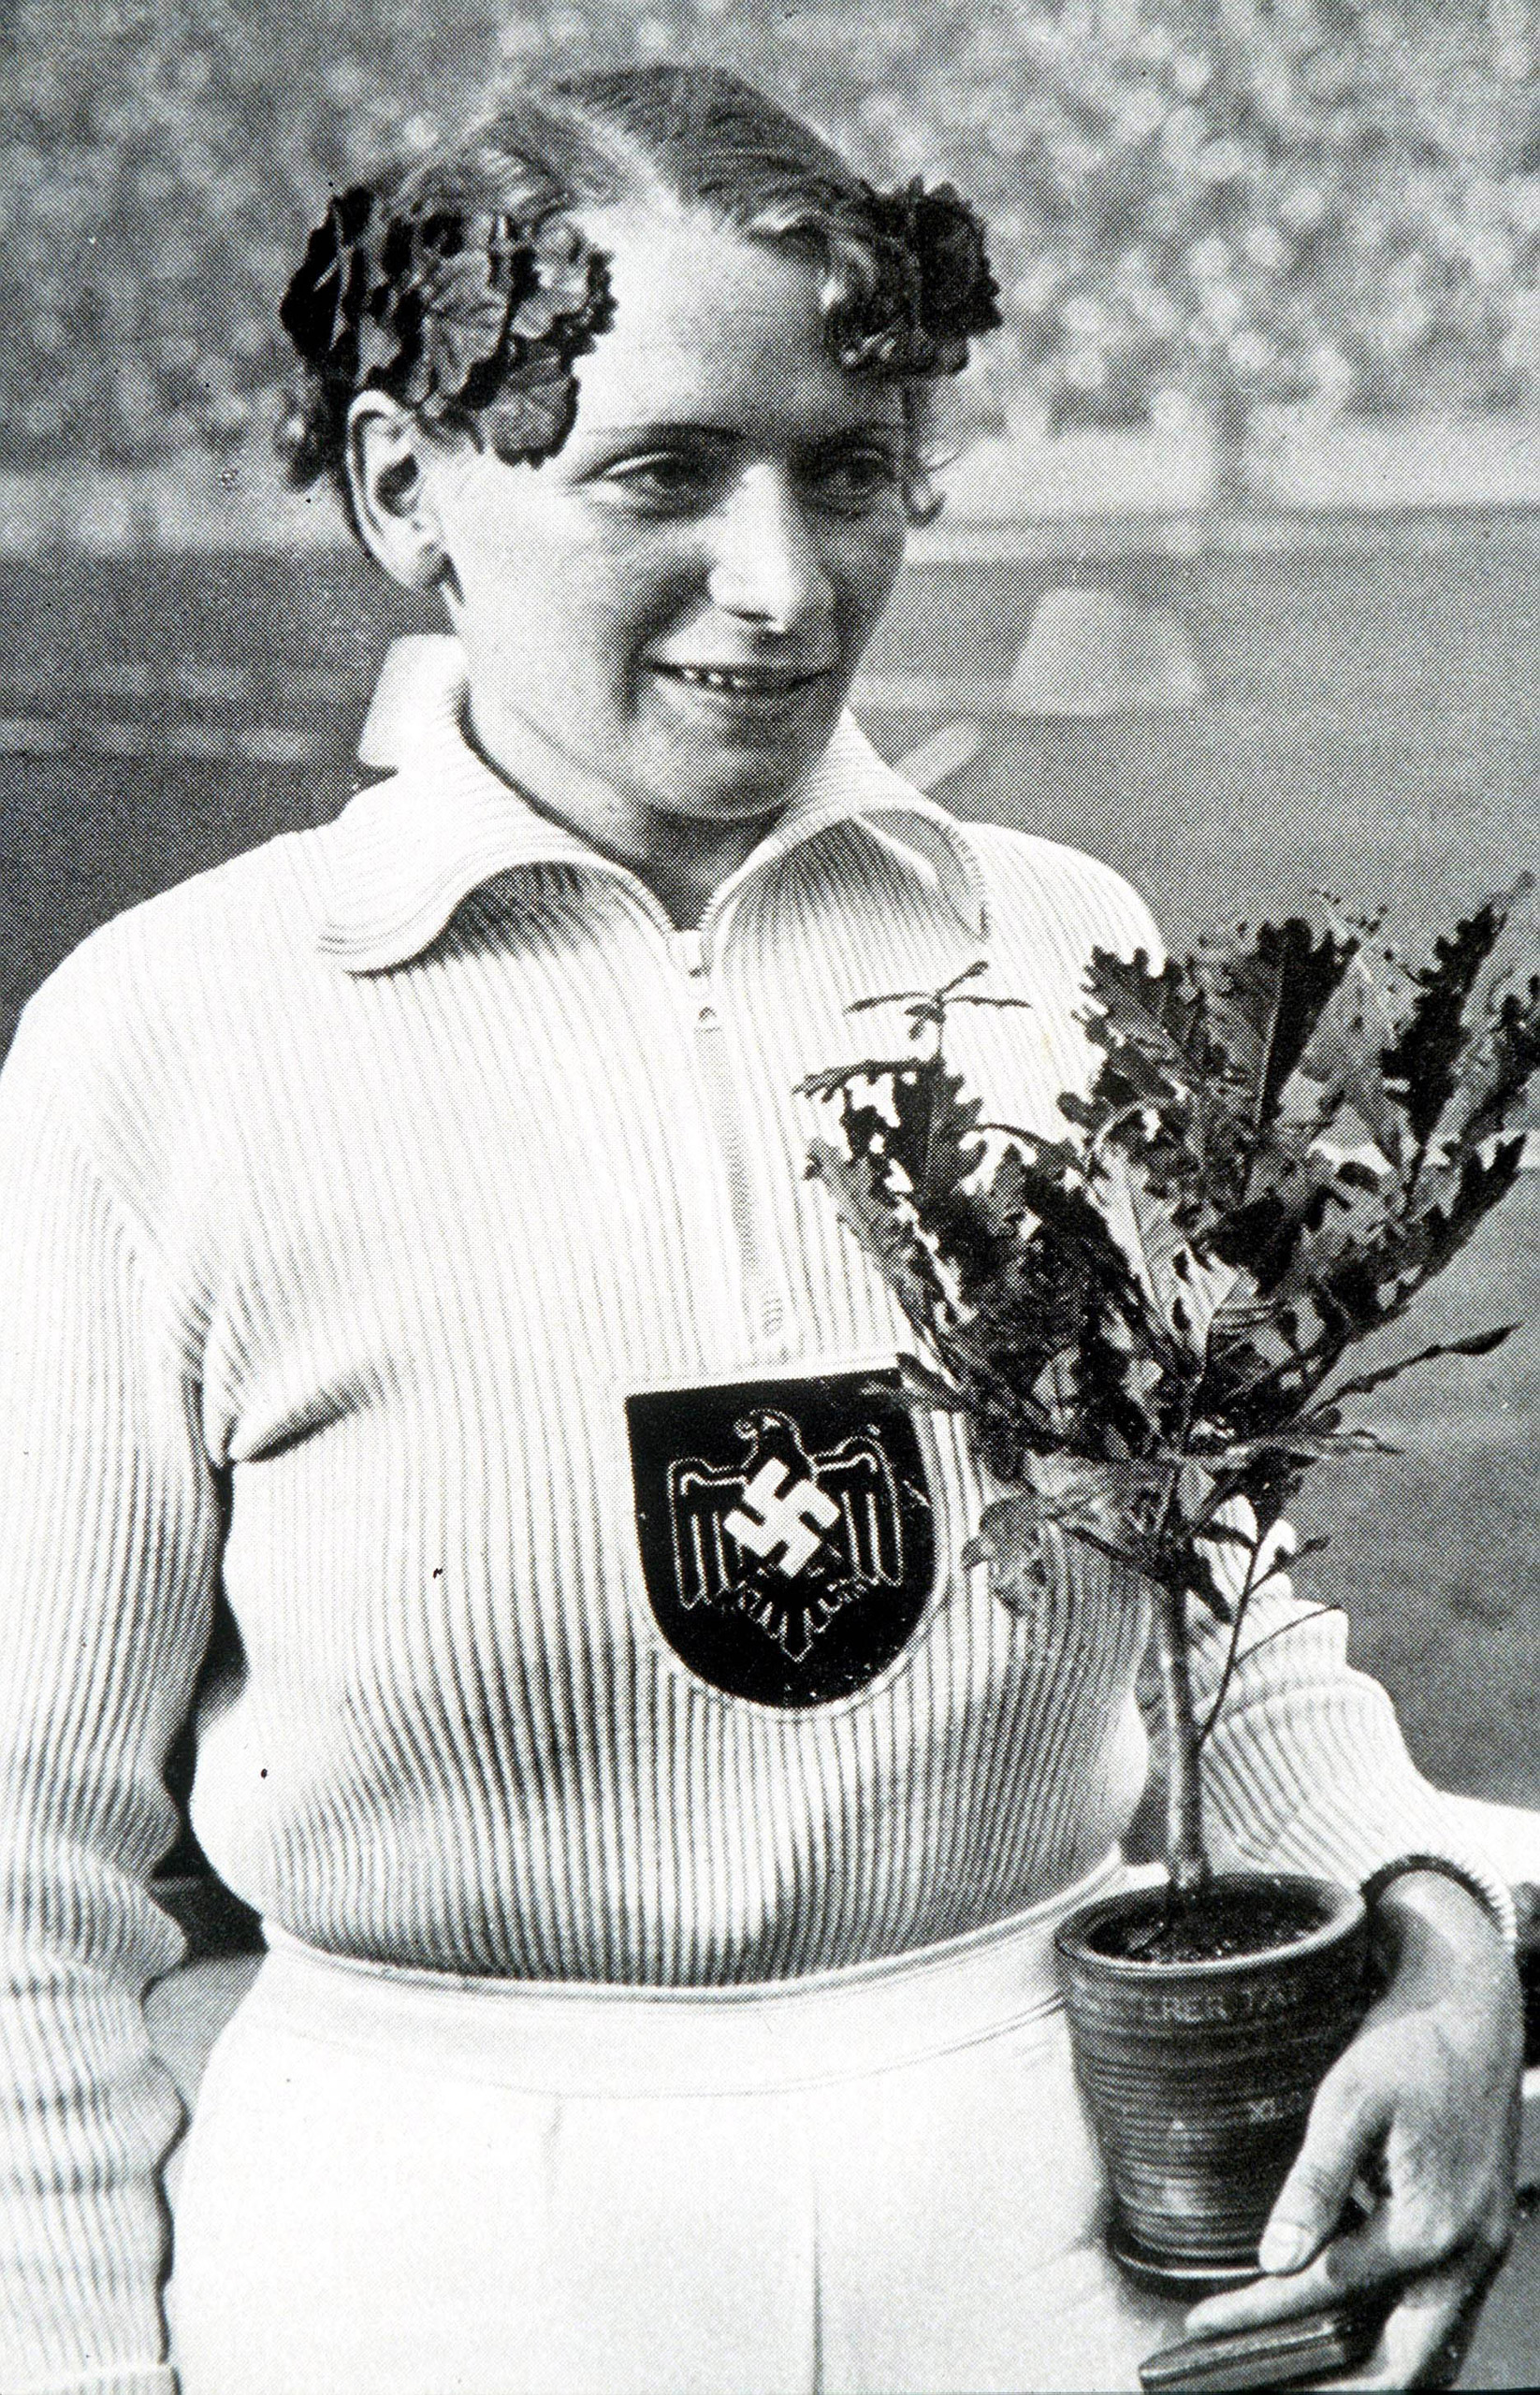 Germany's Tilly Fleischer, who won the gold medal in women's javelin, at the 1936 Olympic Games in Berlin